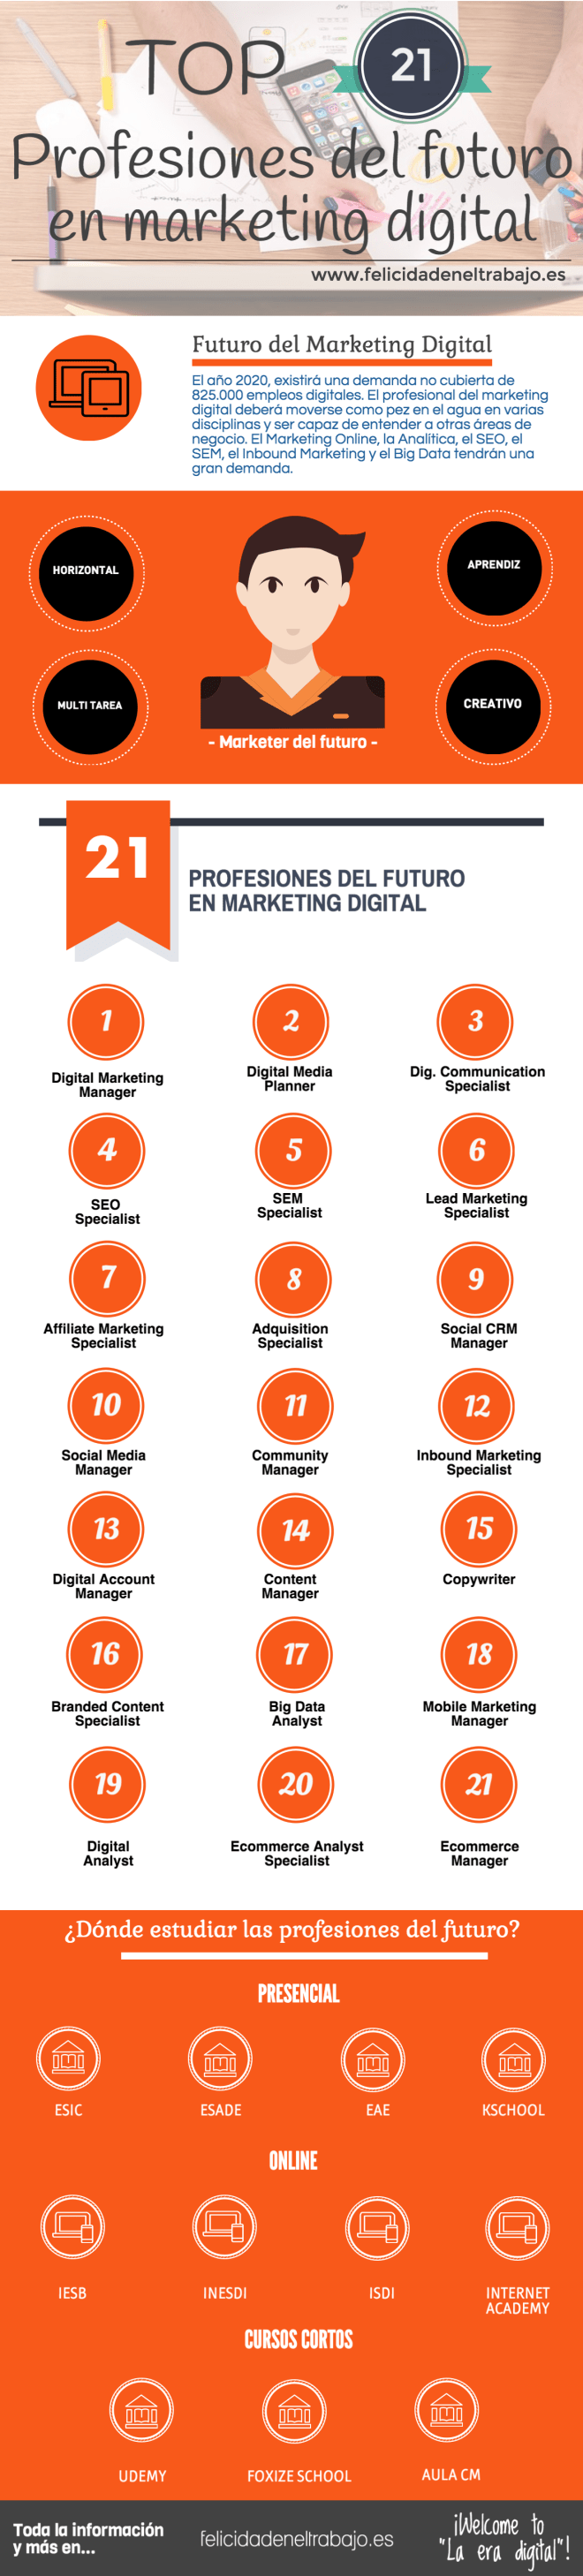 Top 20 profesiones de futuro en Marketing Digital